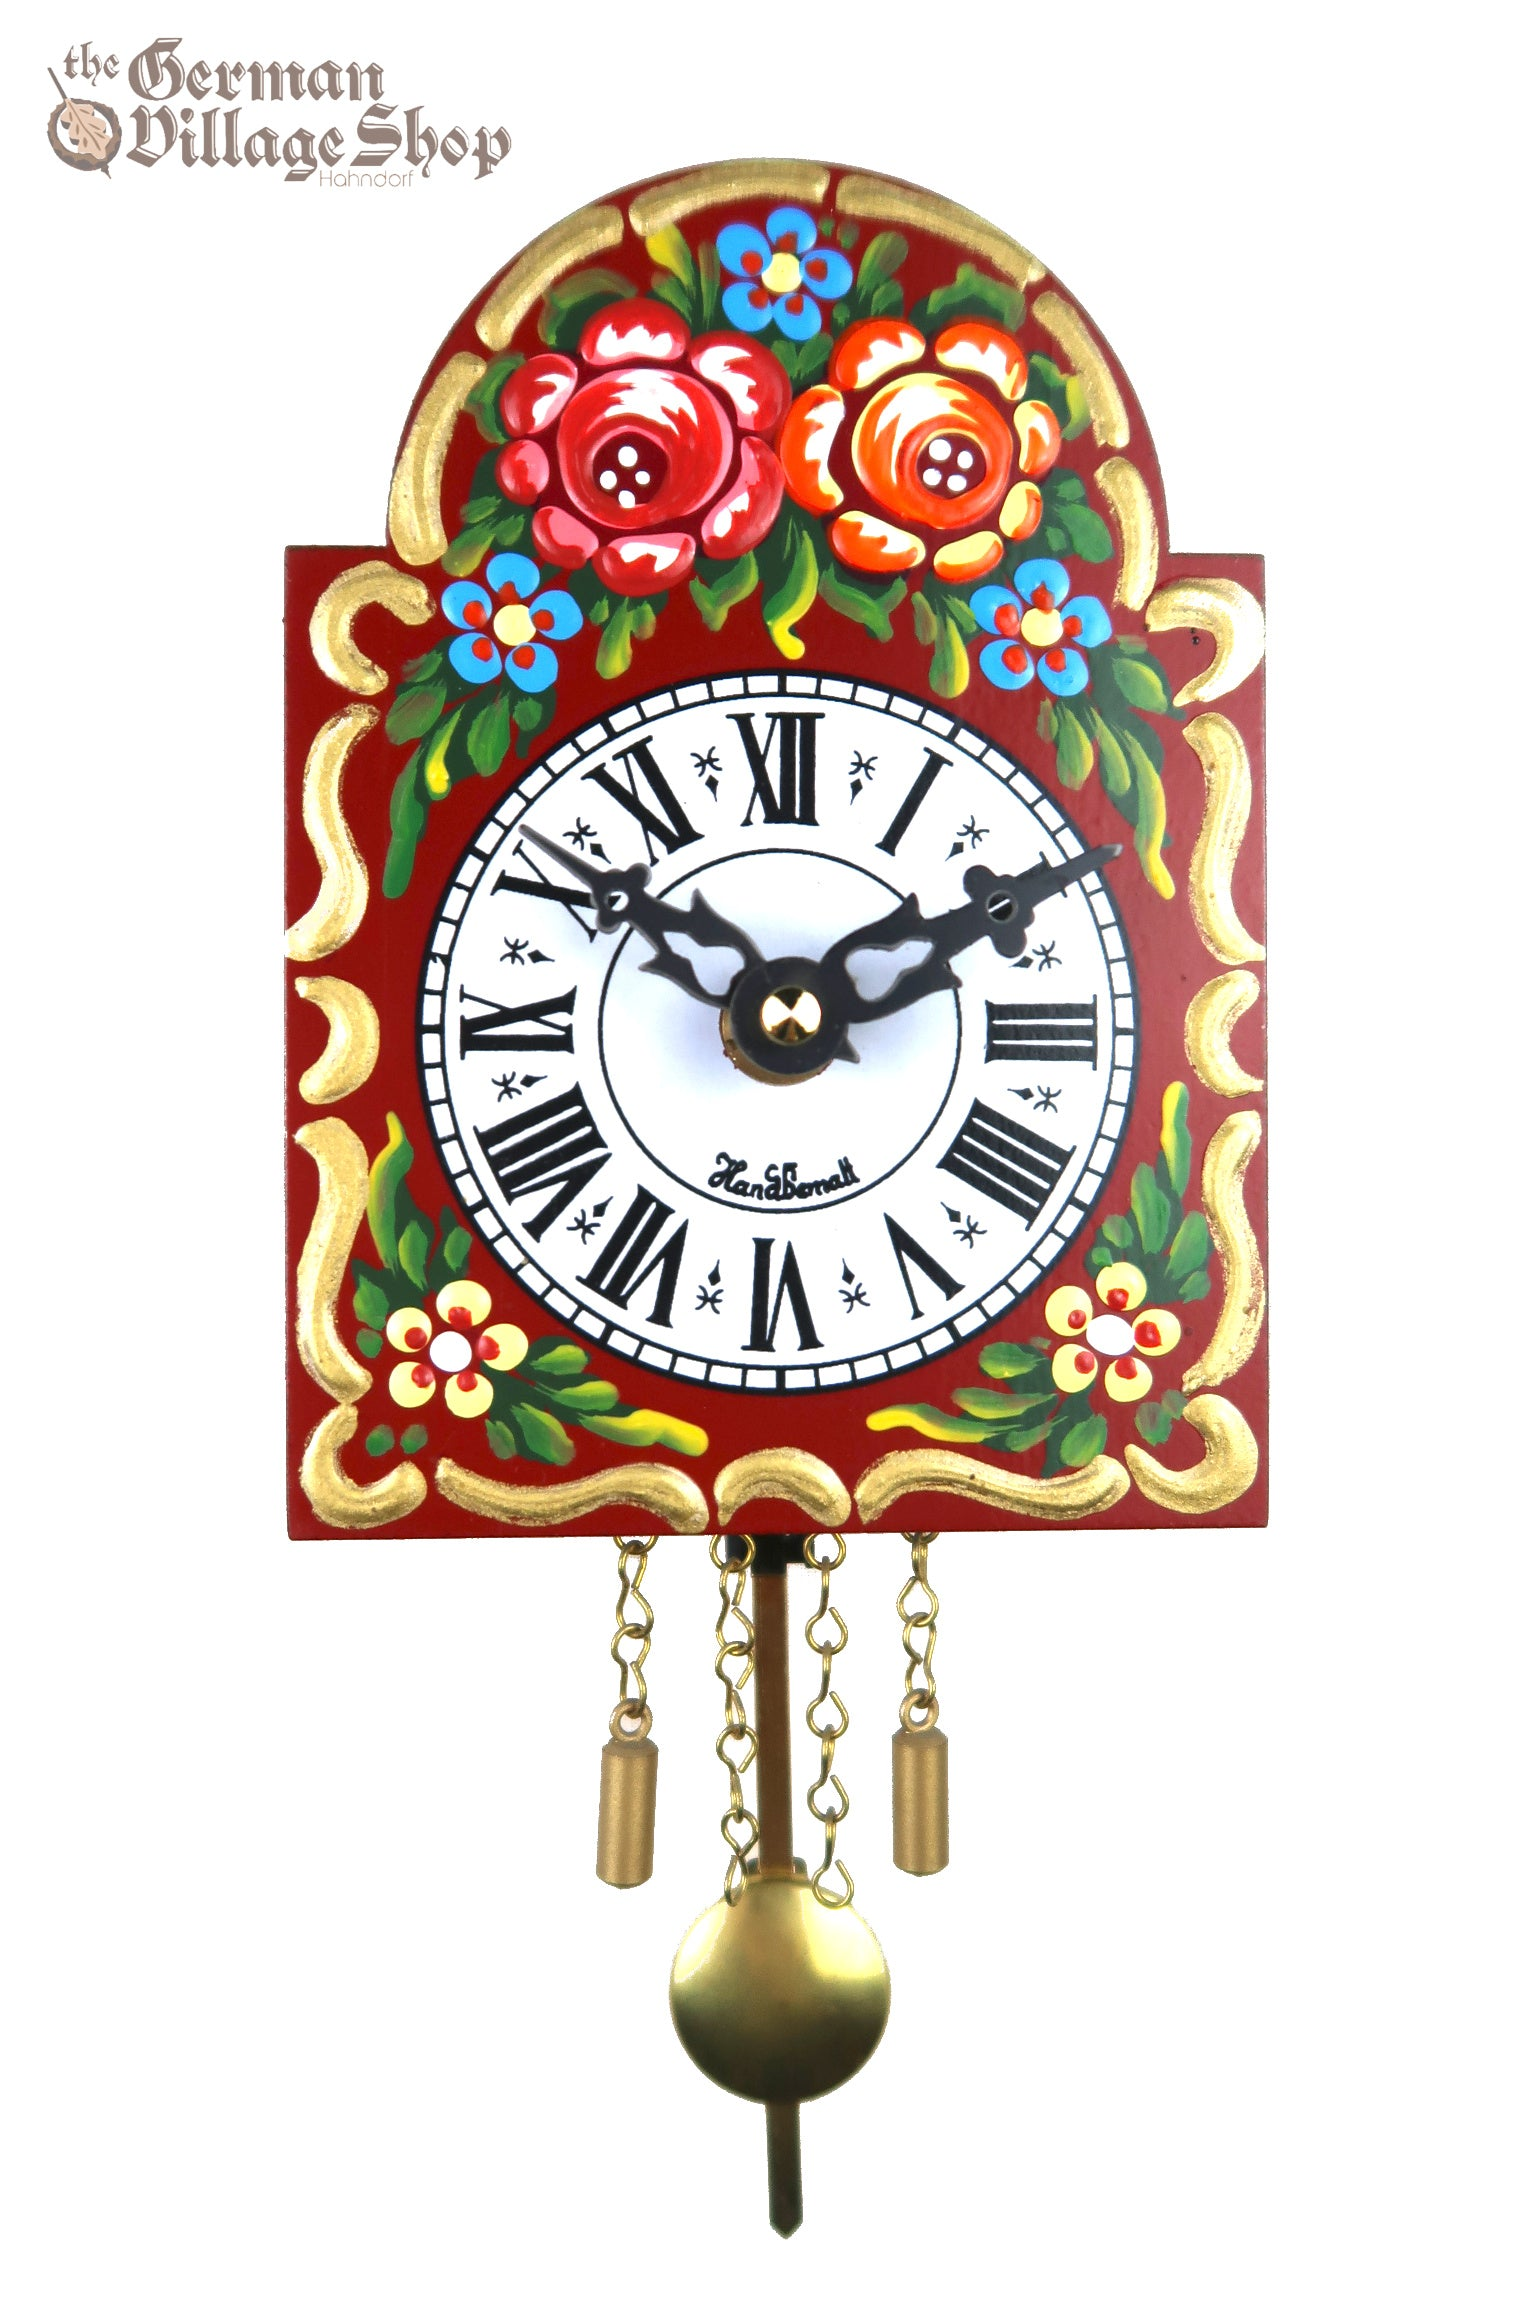 Kuckoolino Cuckoo Clock Shield design